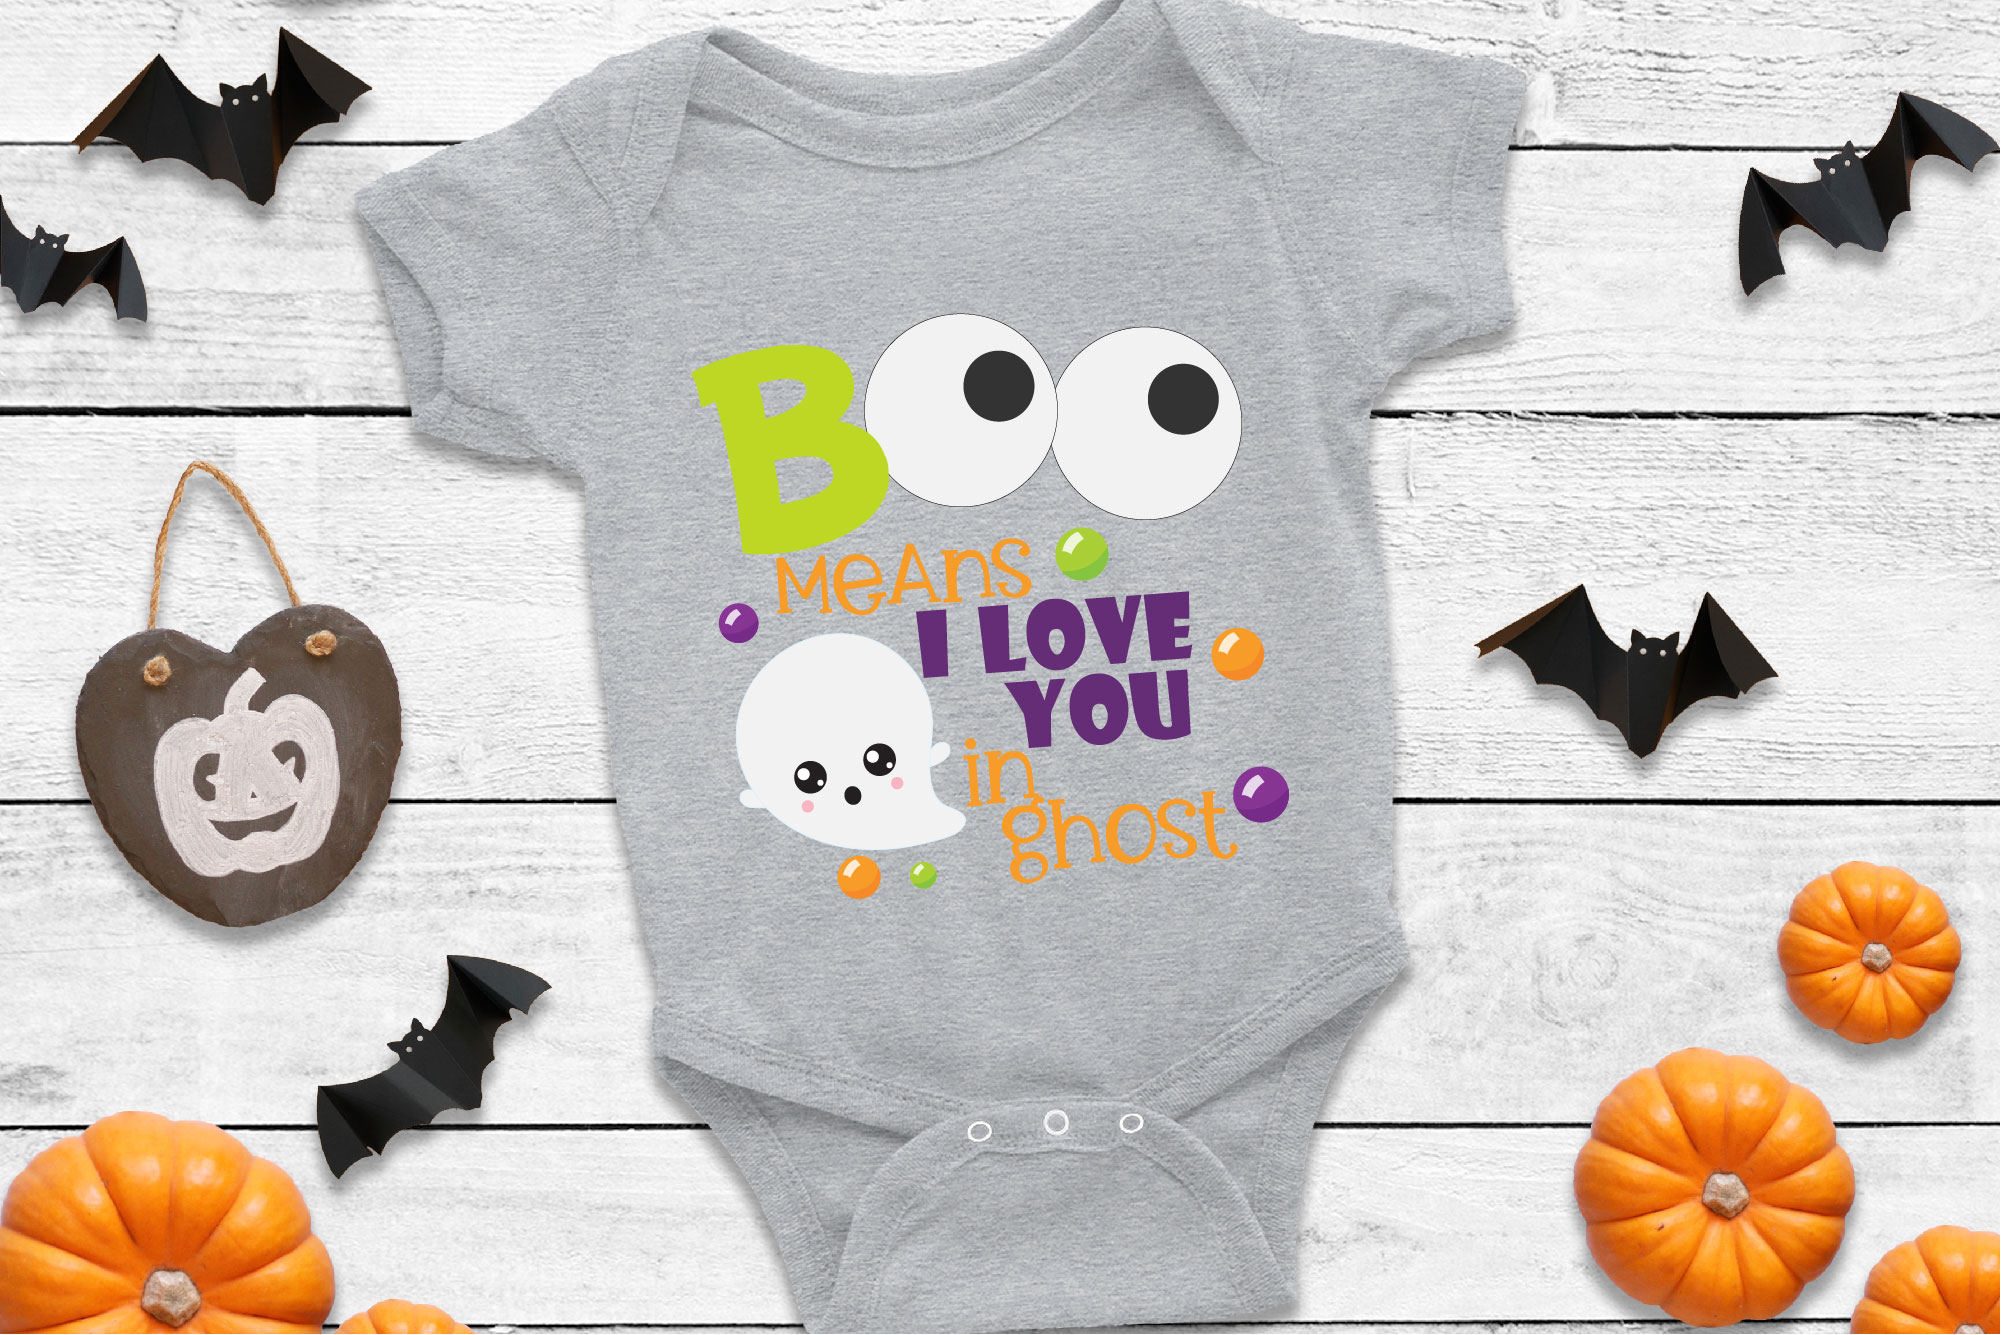 Boo Means I Love You In Ghost SVG Sublimation, Halloween SVG example image 1